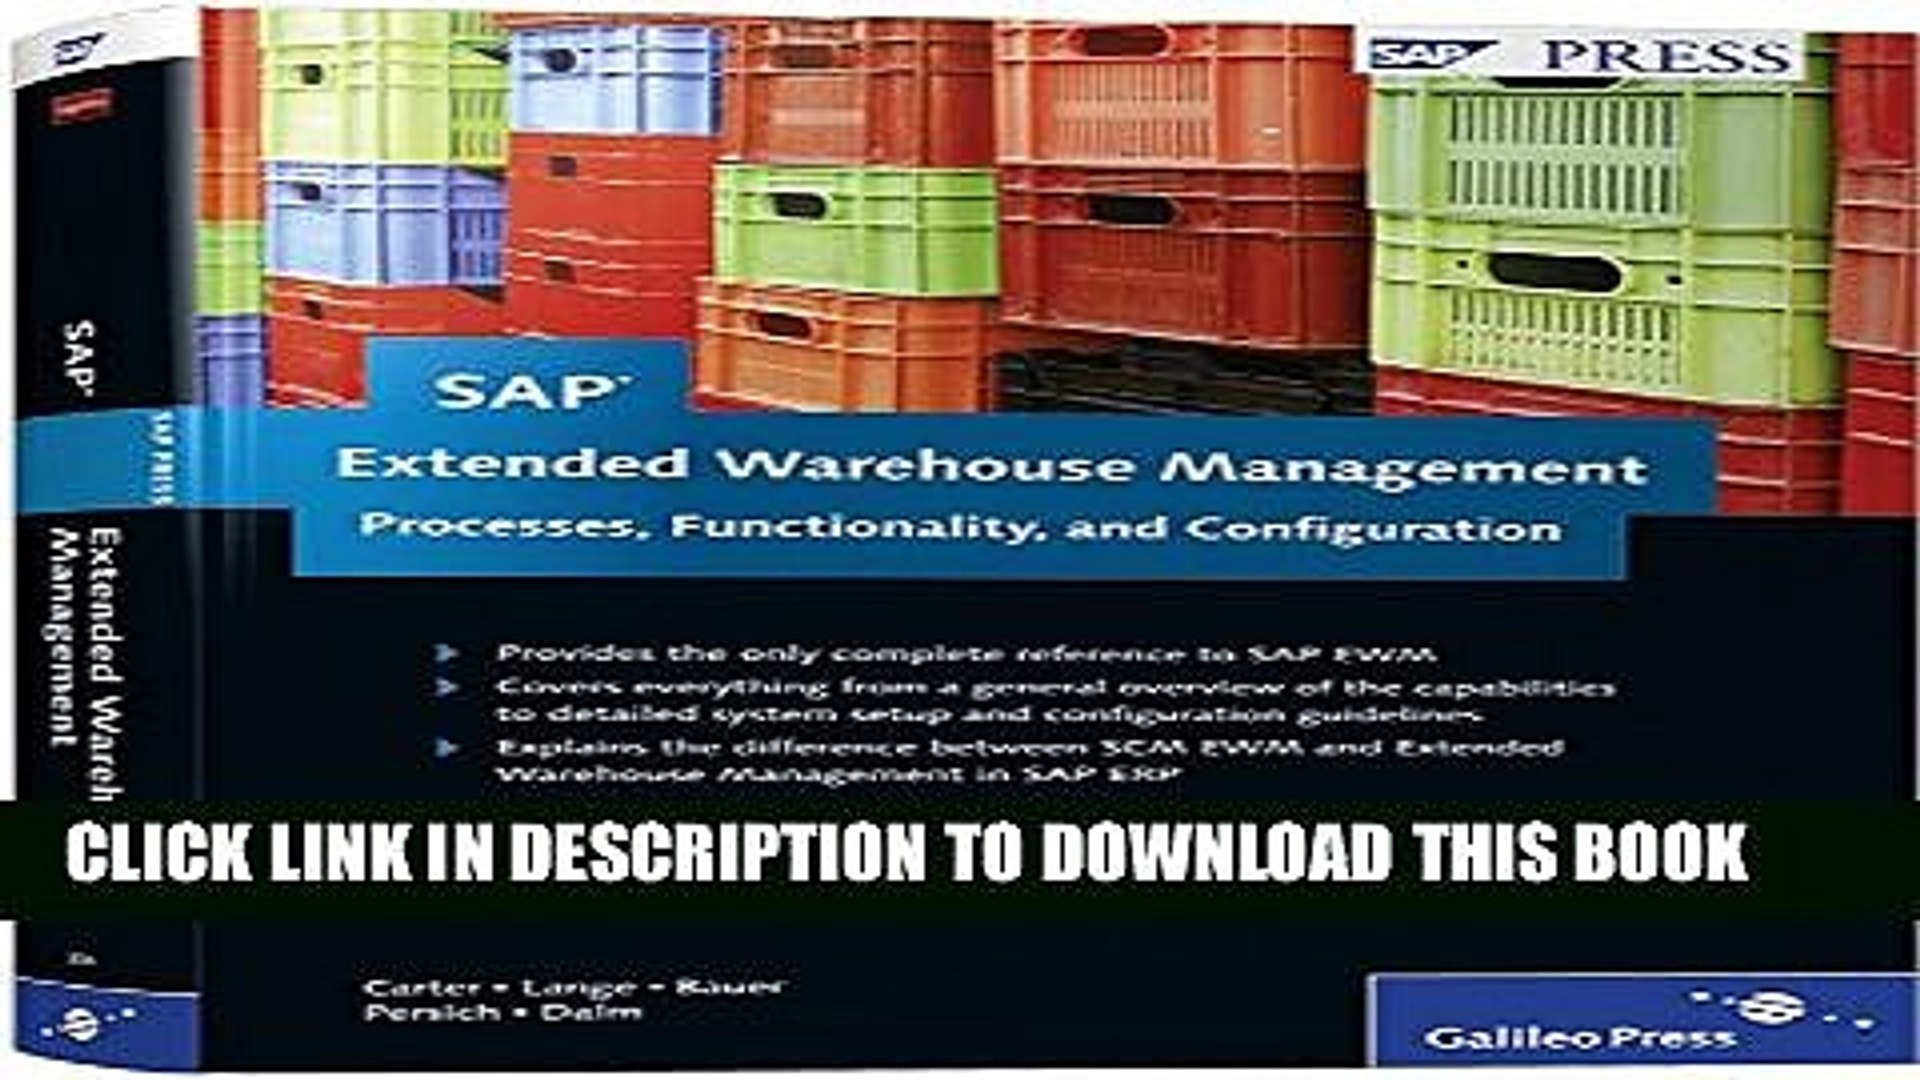 [PDF] SAP Extended Warehouse Management: Processes, Functionality, and  Configuration Popular Online